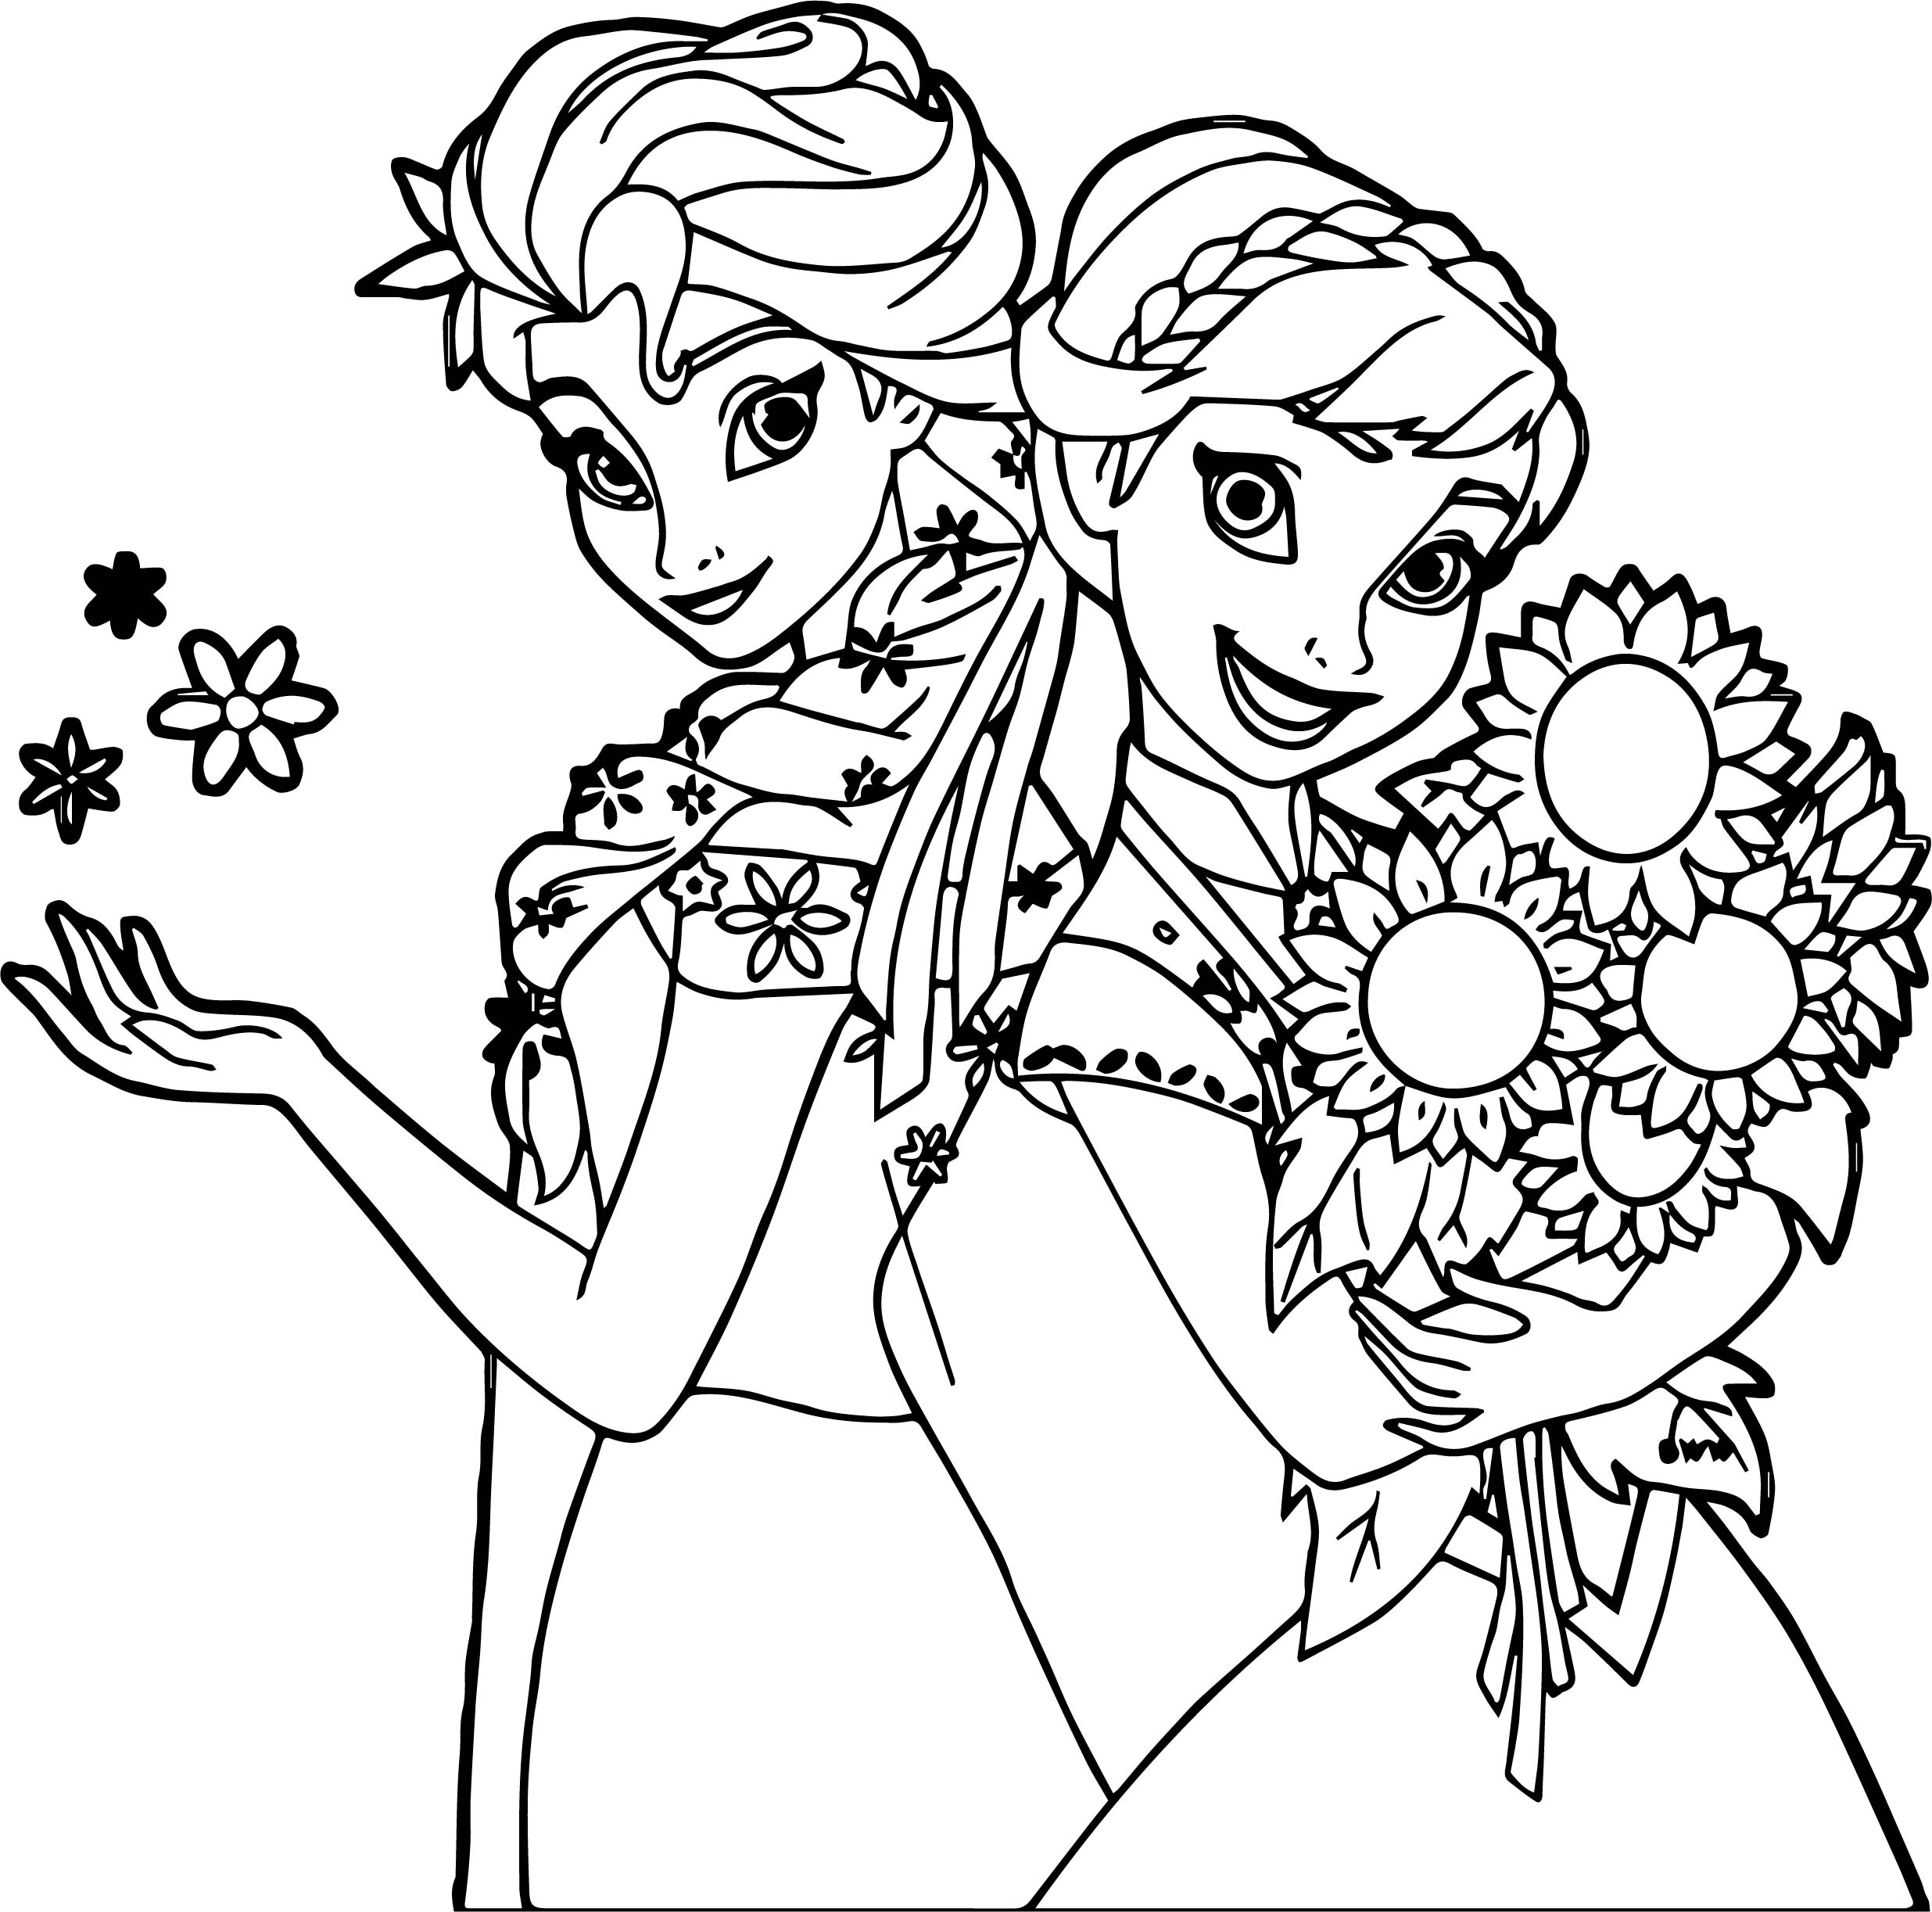 frozen fever coloring pages - frozen fever and anna snow and flower coloring page